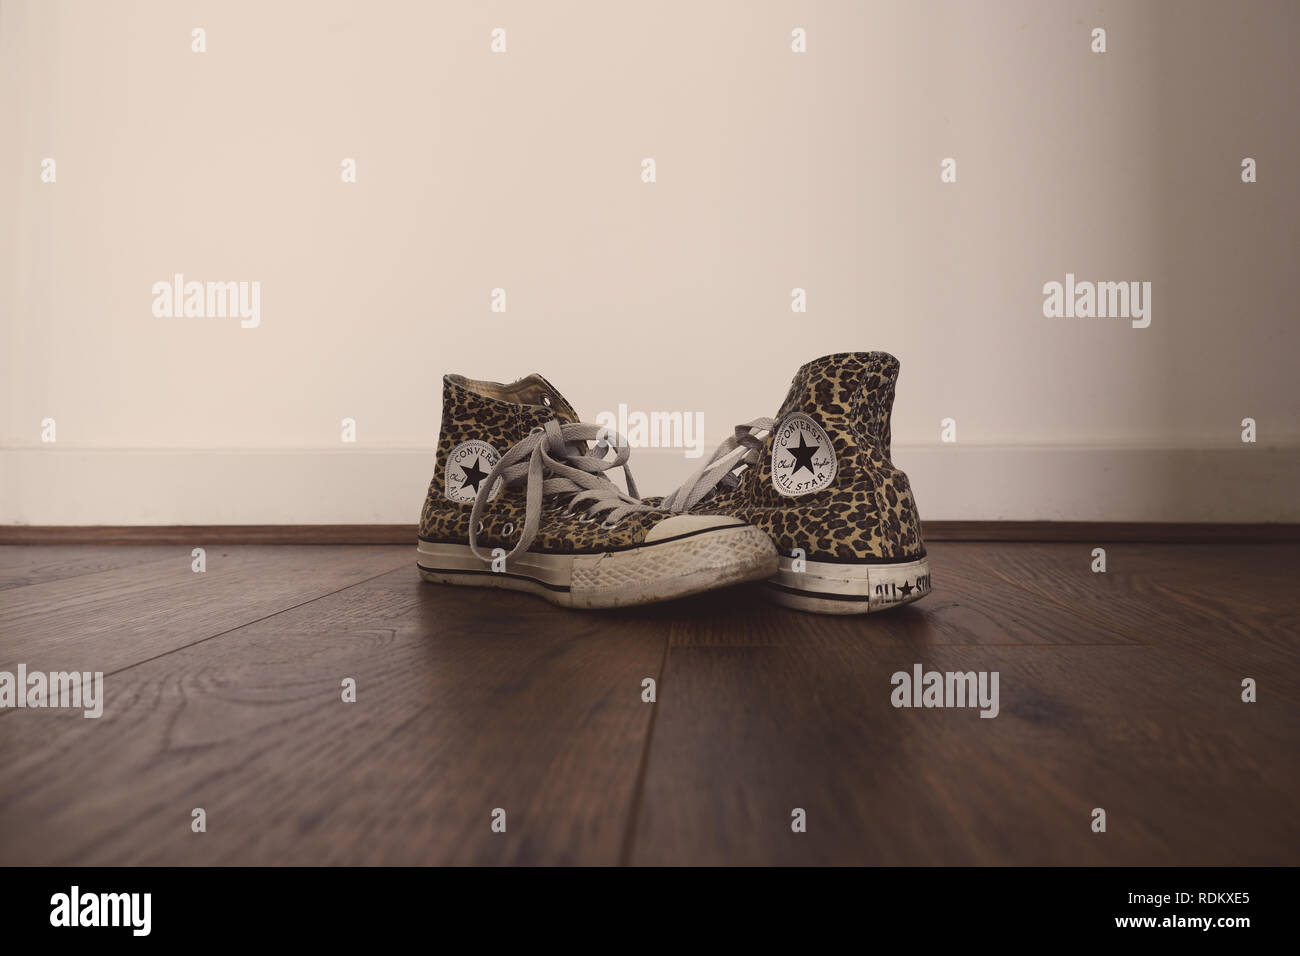 bfcf180bbba1 Converse Shoes Stock Photos   Converse Shoes Stock Images - Page 3 ...